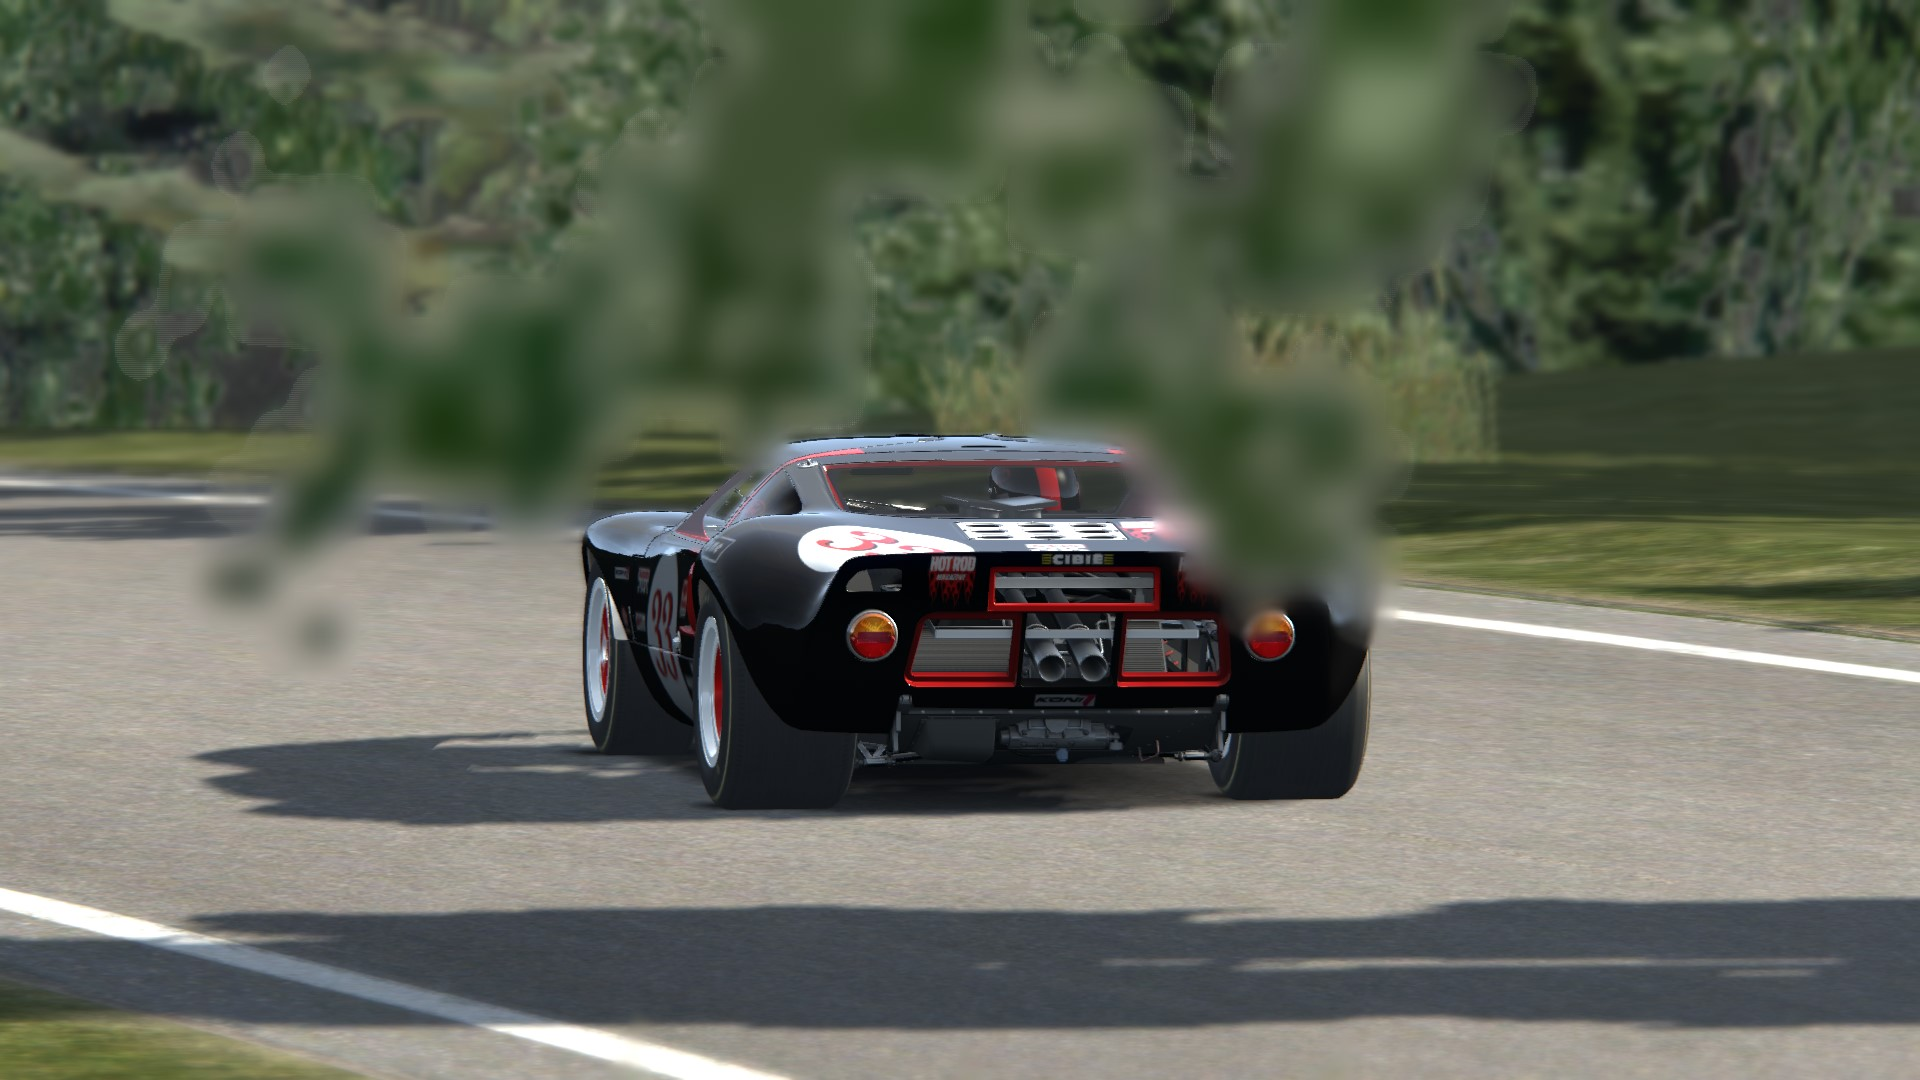 Screenshot_ks_ford_gt40_solitude1964_29-10-115-19-34-34.jpg